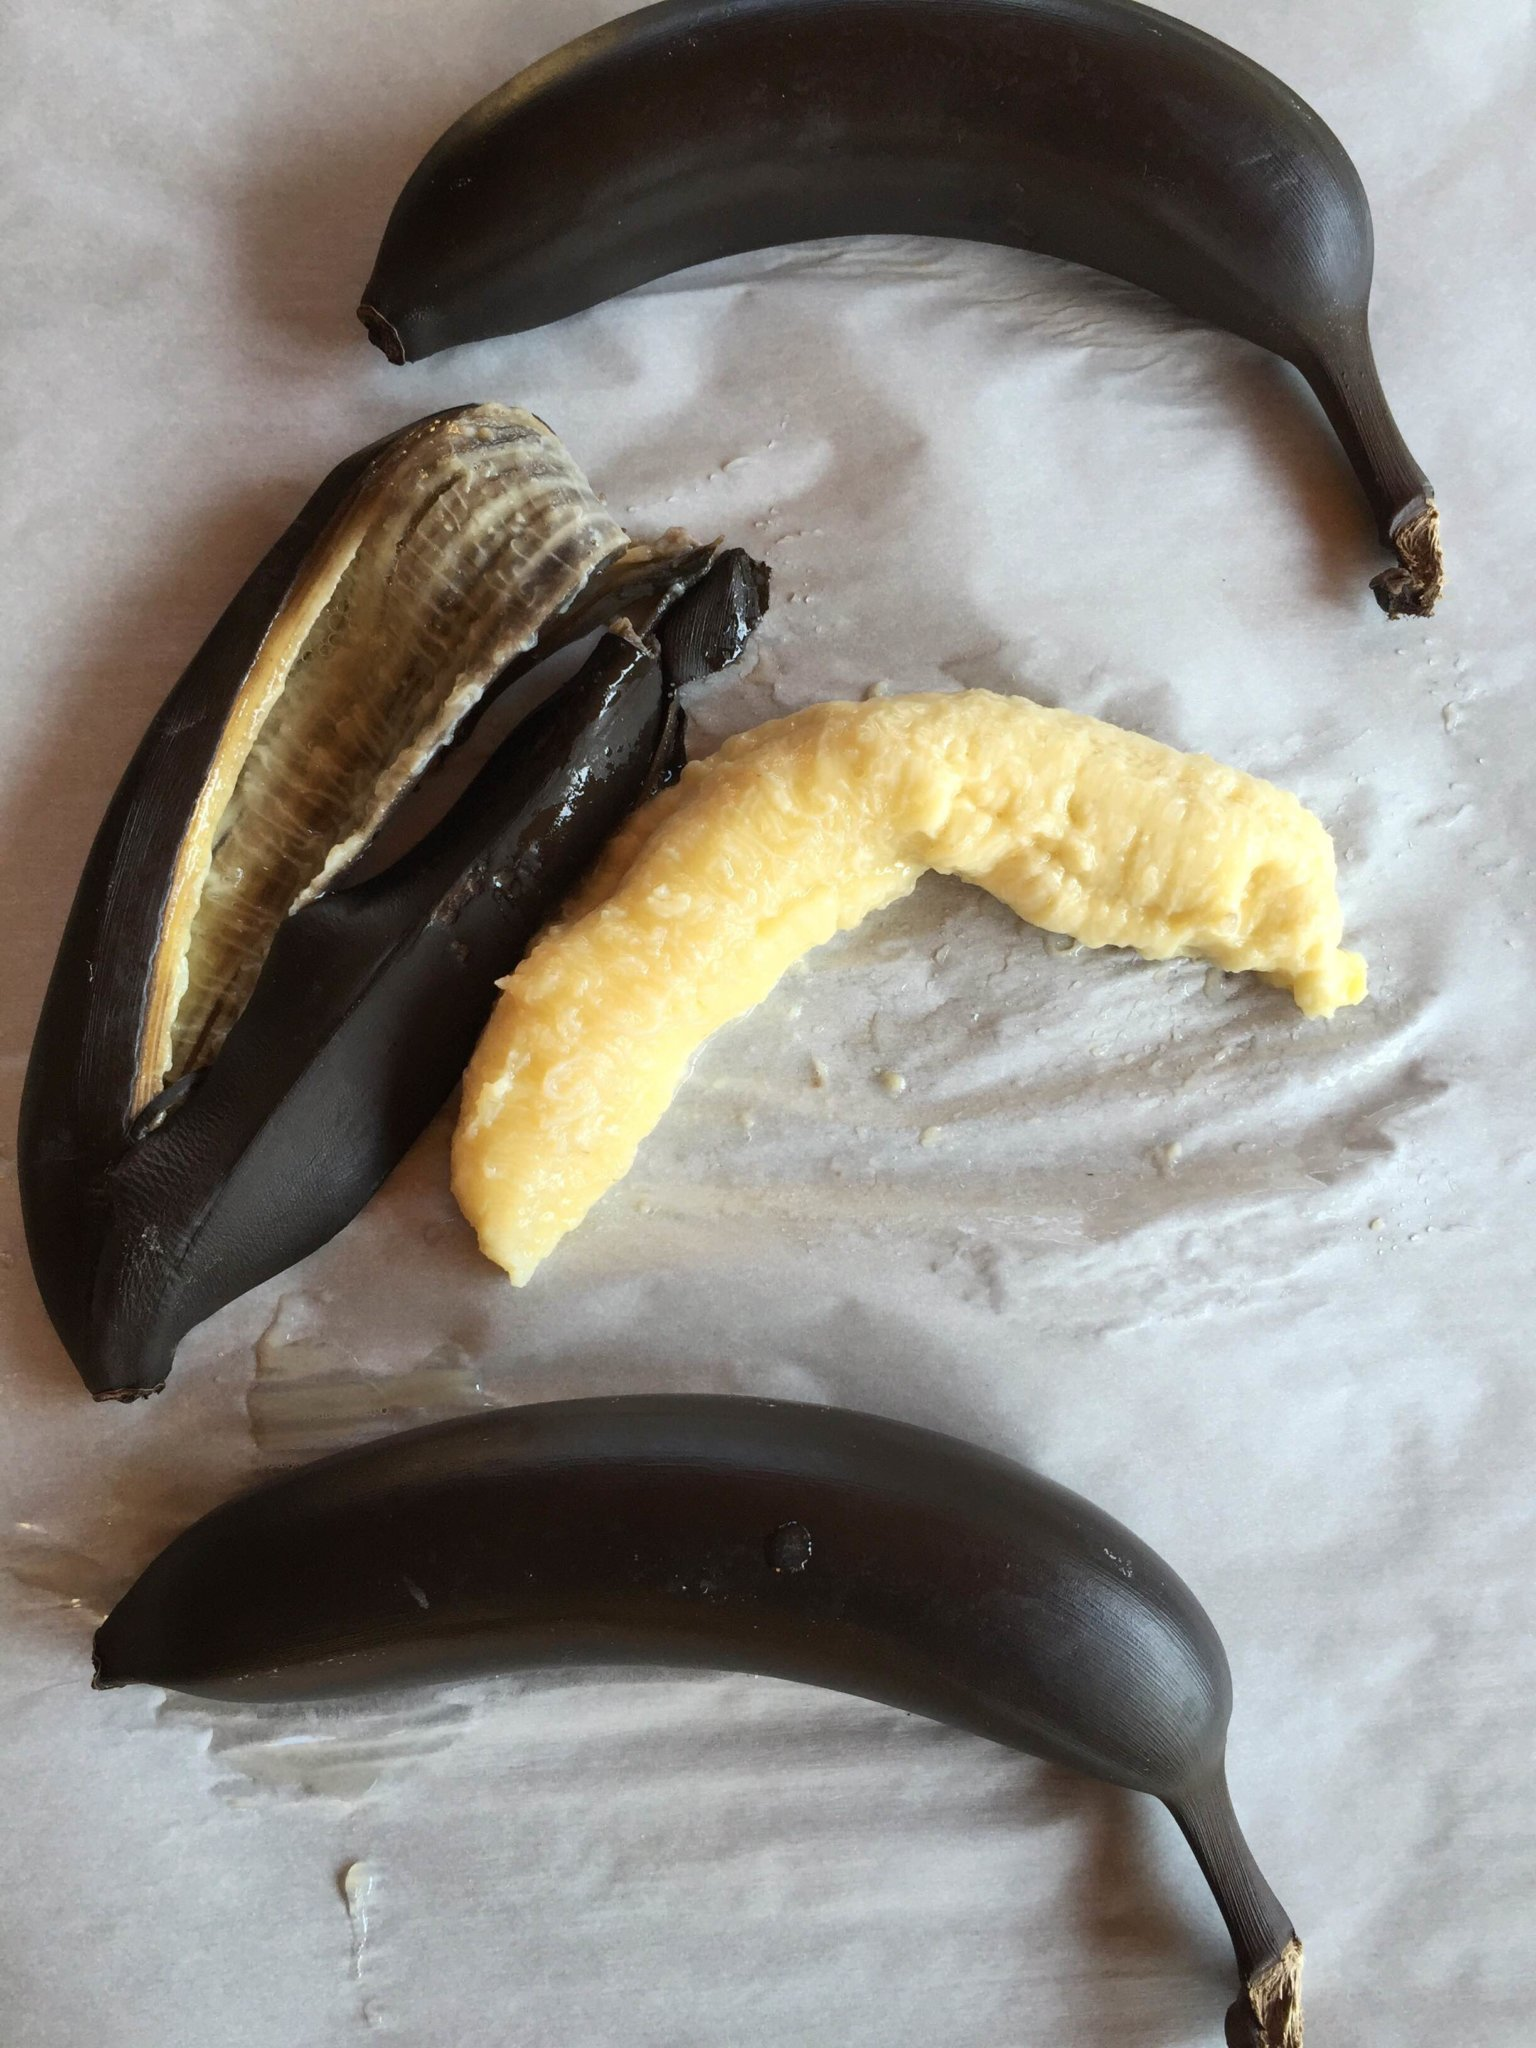 How To Ripen Bananas In The Oven Holley Grainger Ms Rdn